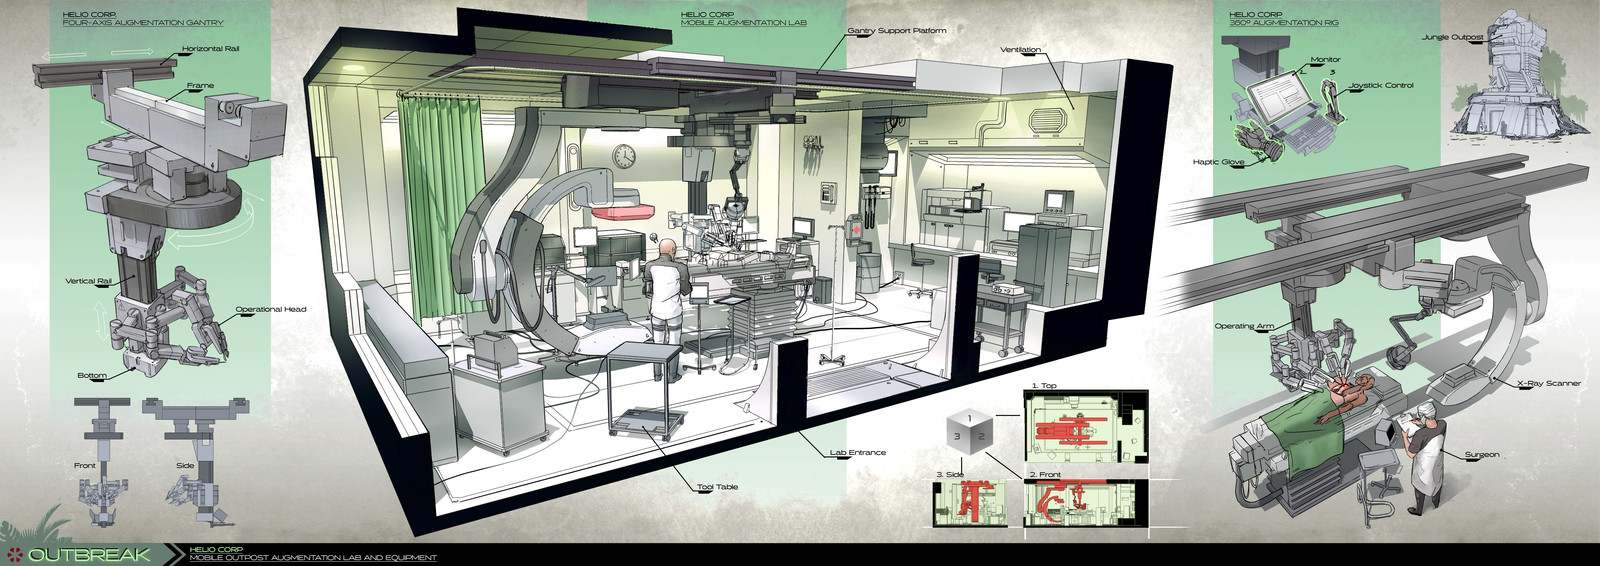 Project Outbreak - Operating Room